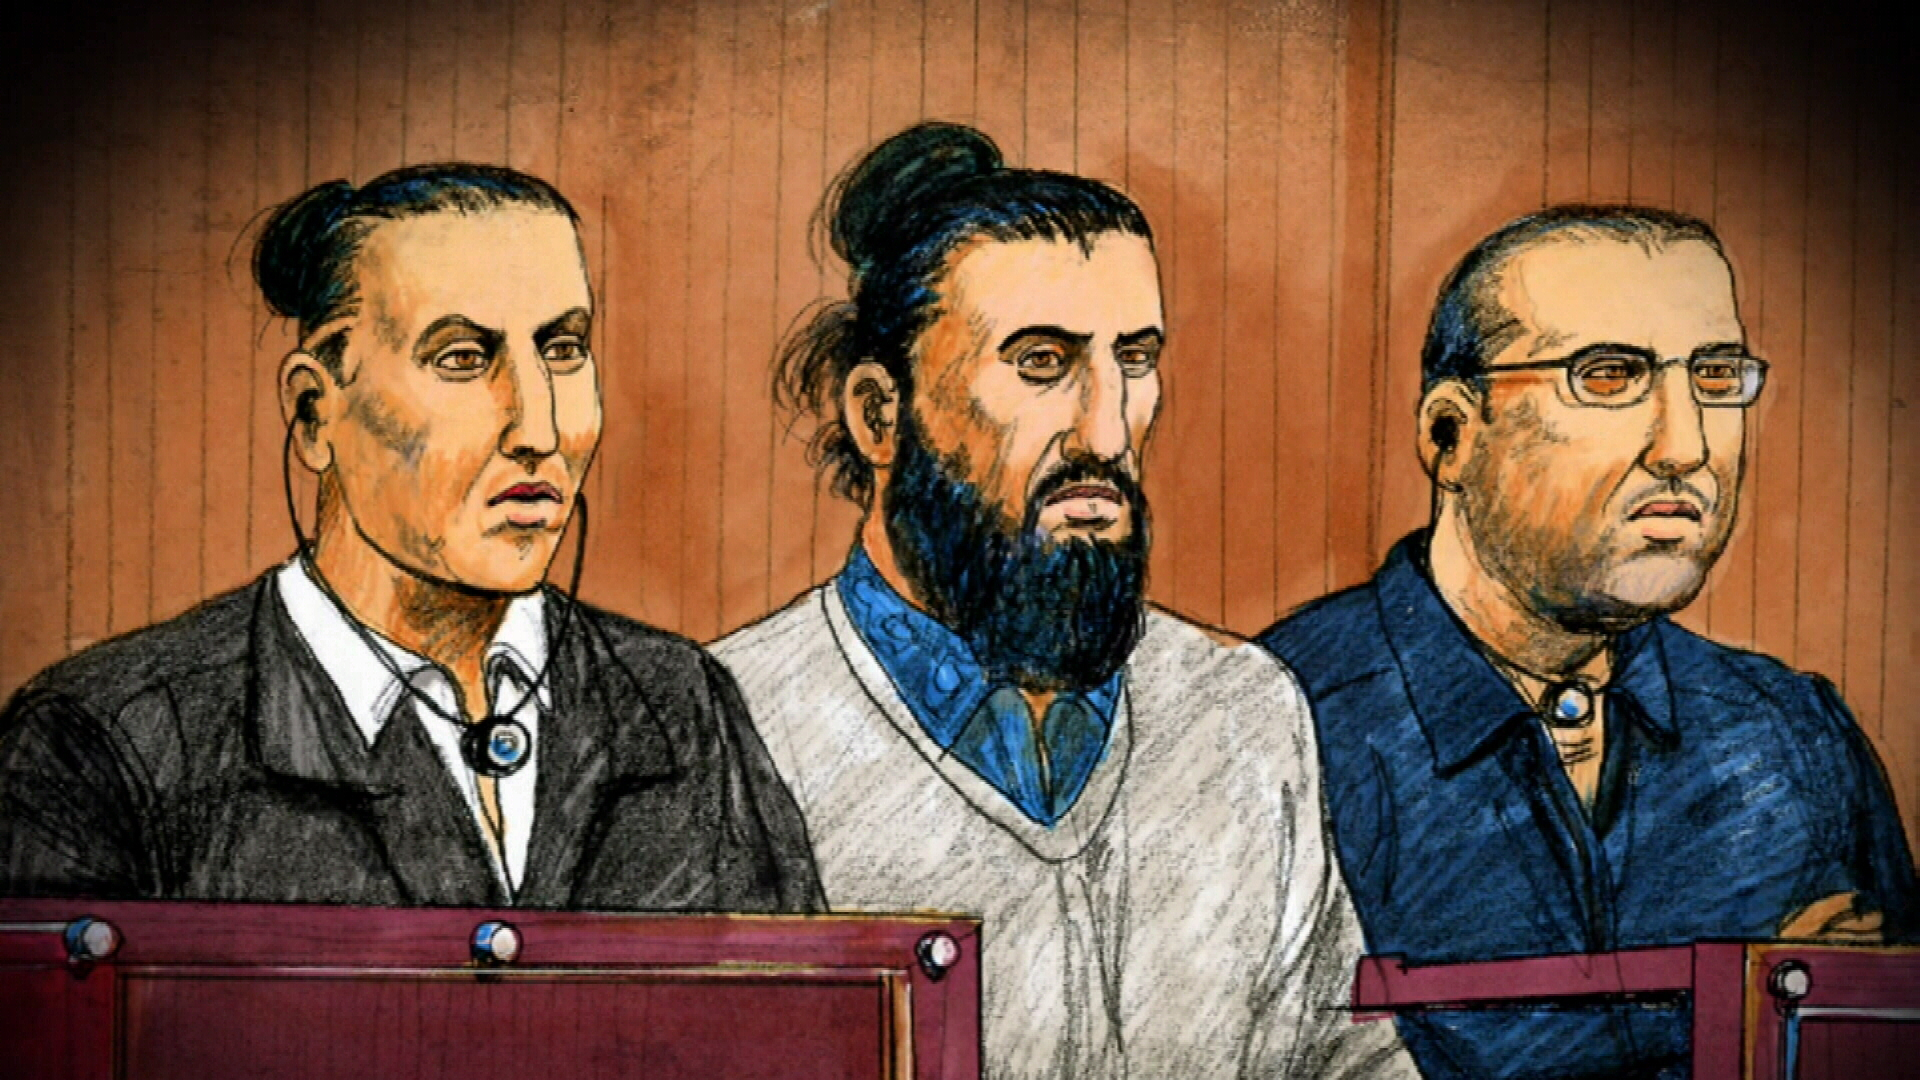 Men found guilty of Melbourne terror plot